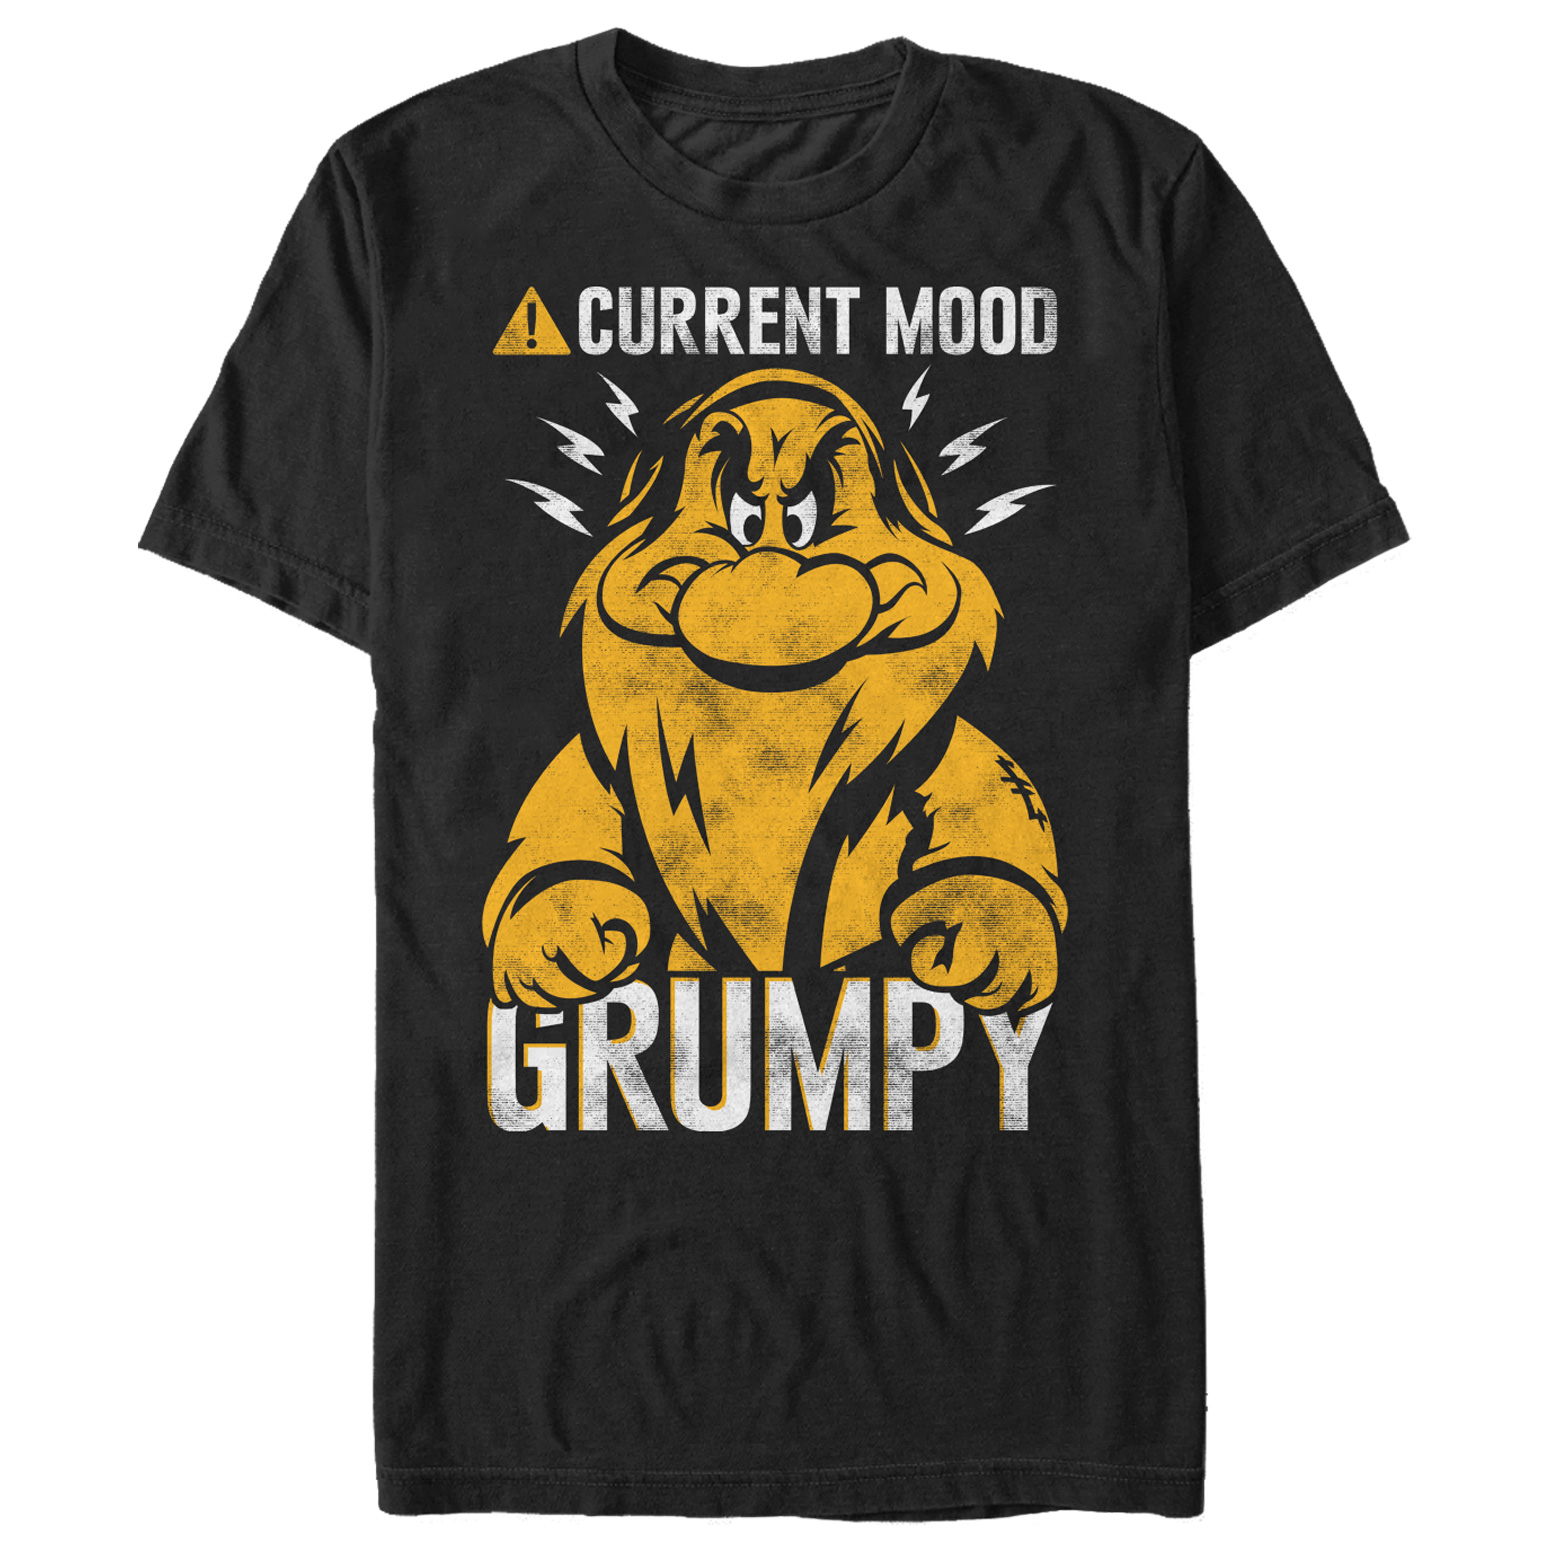 Snow White and the Seven Dwarves Men's Grumpy Mood T-Shirt